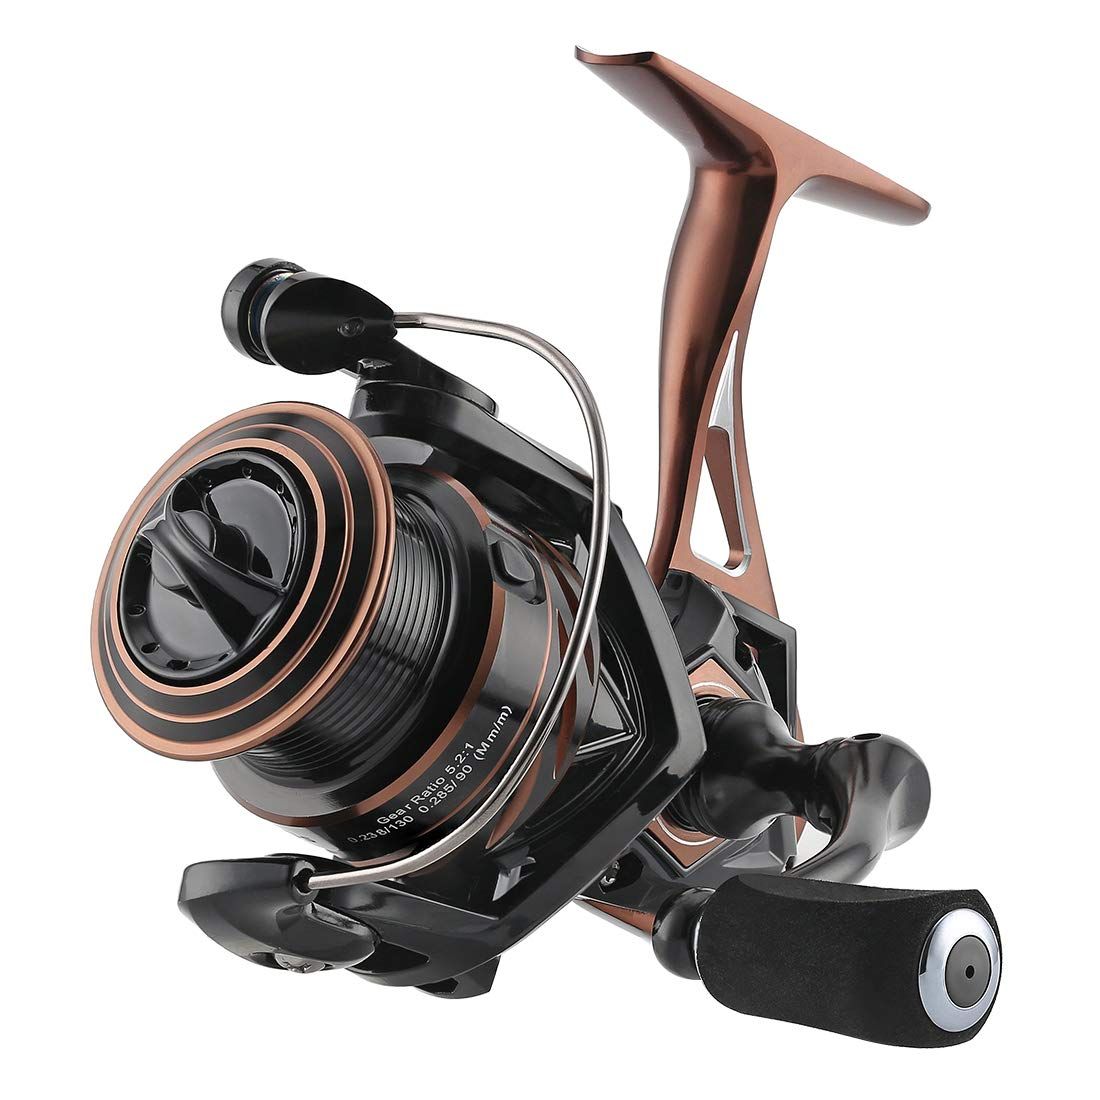 SeaKnight Spinning Reel NAGA II Lightweight Smooth Fishing Reel 9 1 BB Full Metal Body Max Drag 33Lbs Fishing Reel